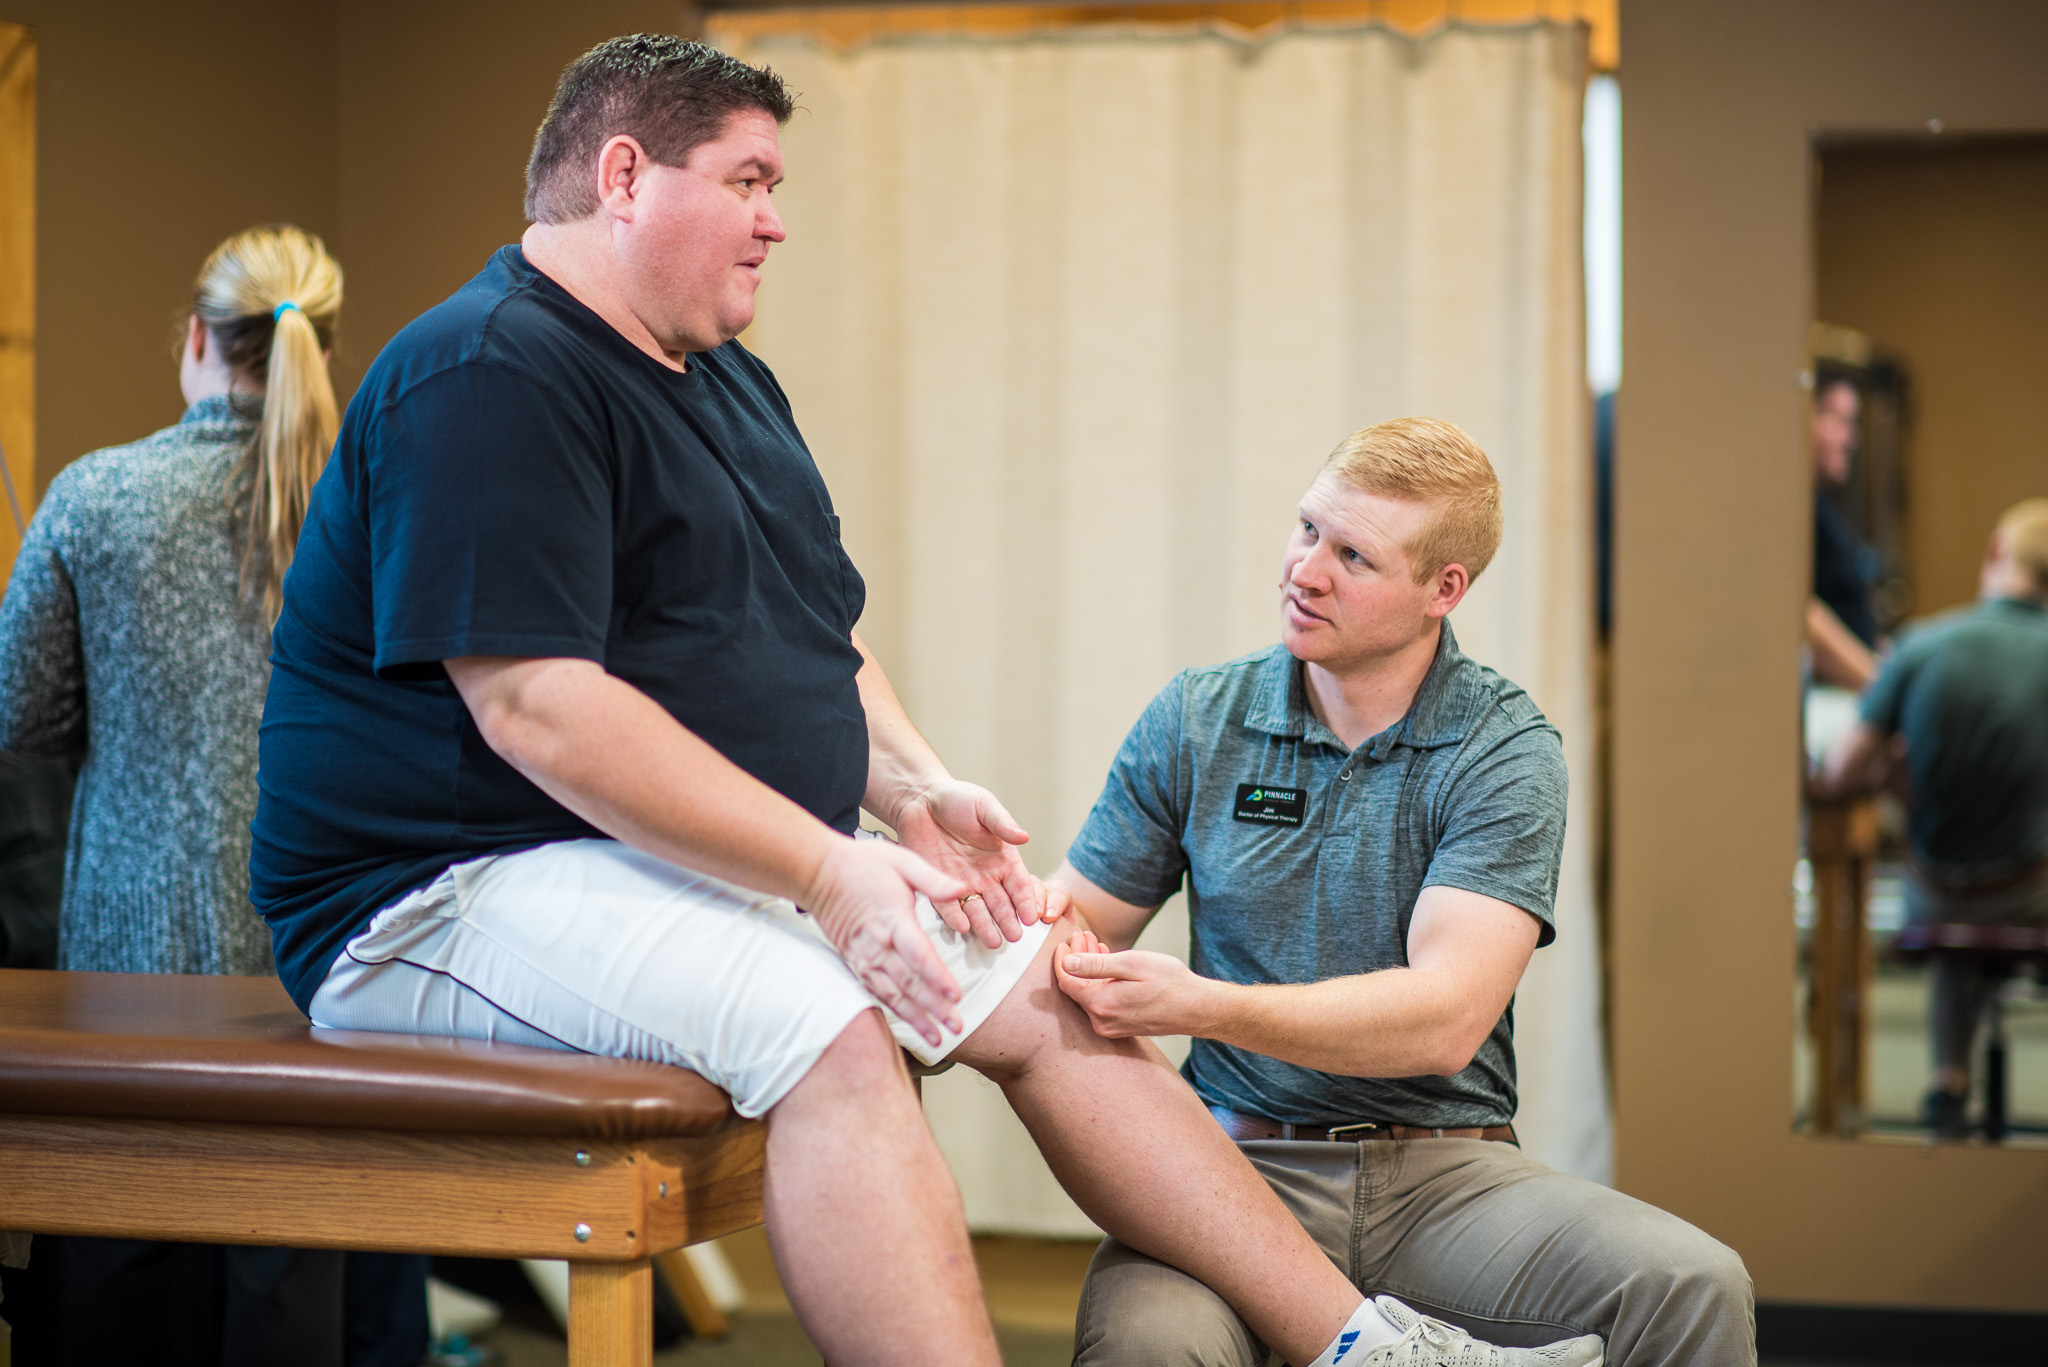 Jim Behrens, Physical Therapist in Post Falls